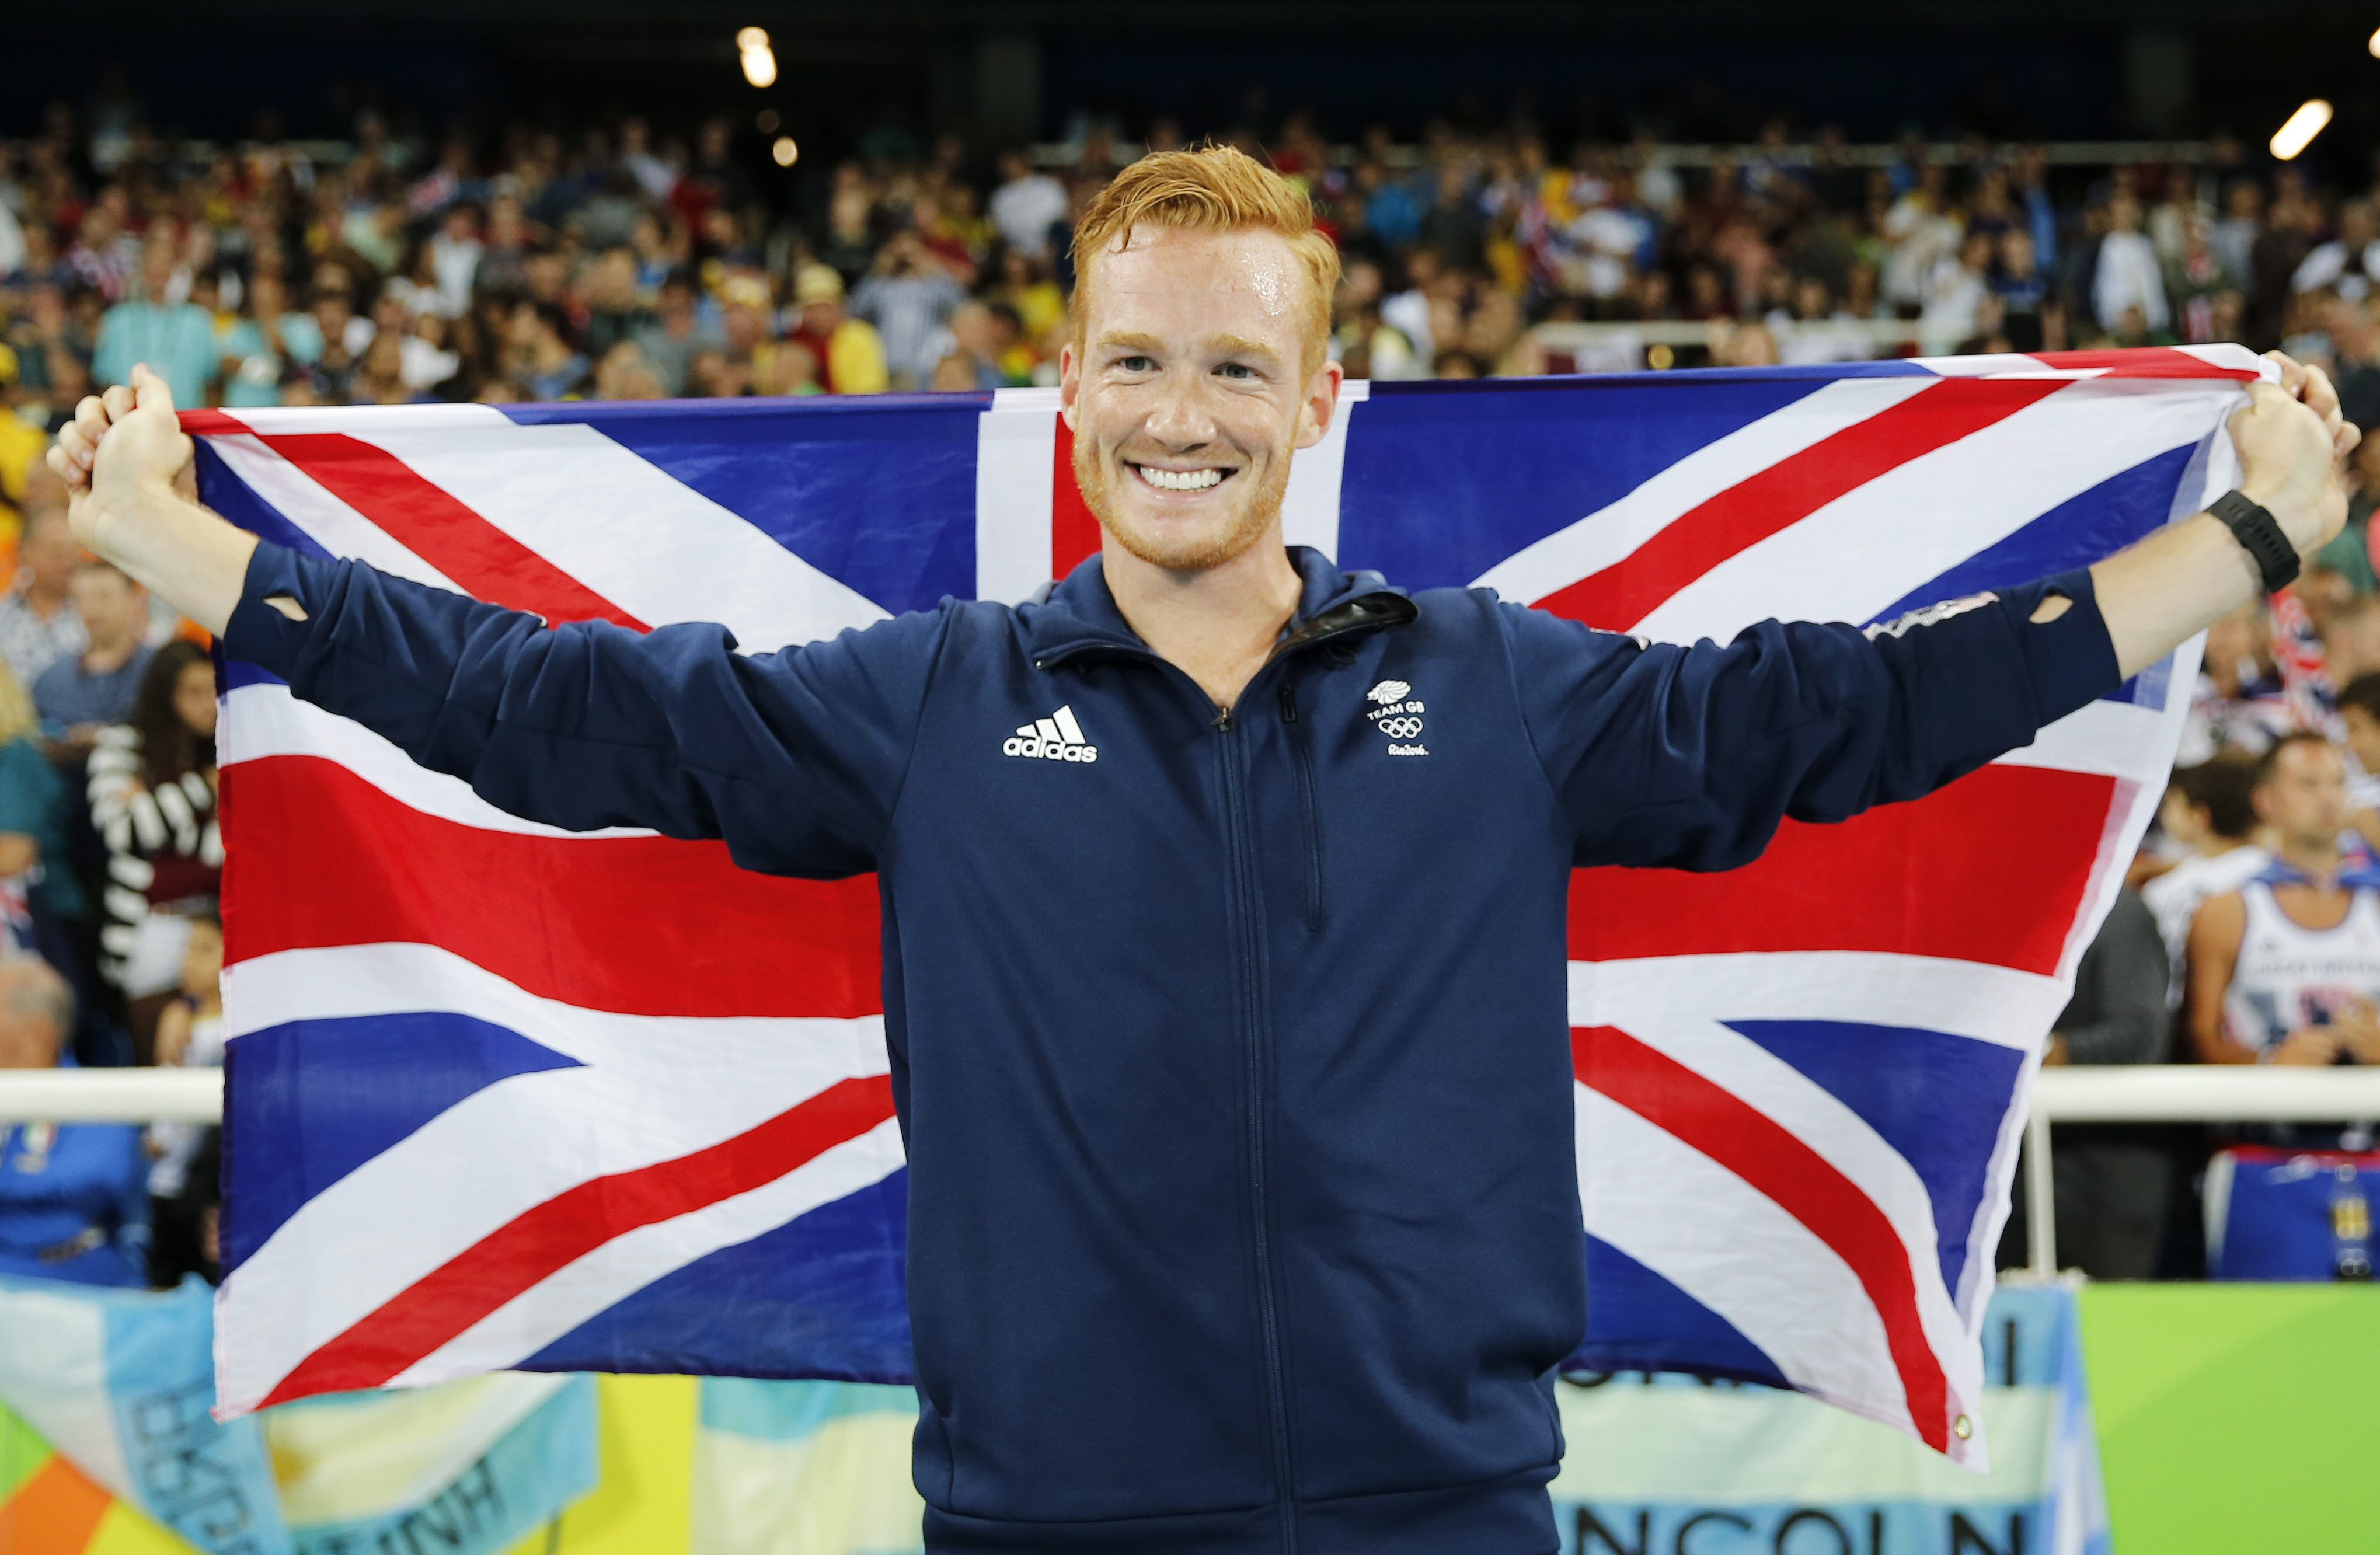 Greg Rutherford won the gold medal for Team GB on Super Saturday at the London 2012 Olympics